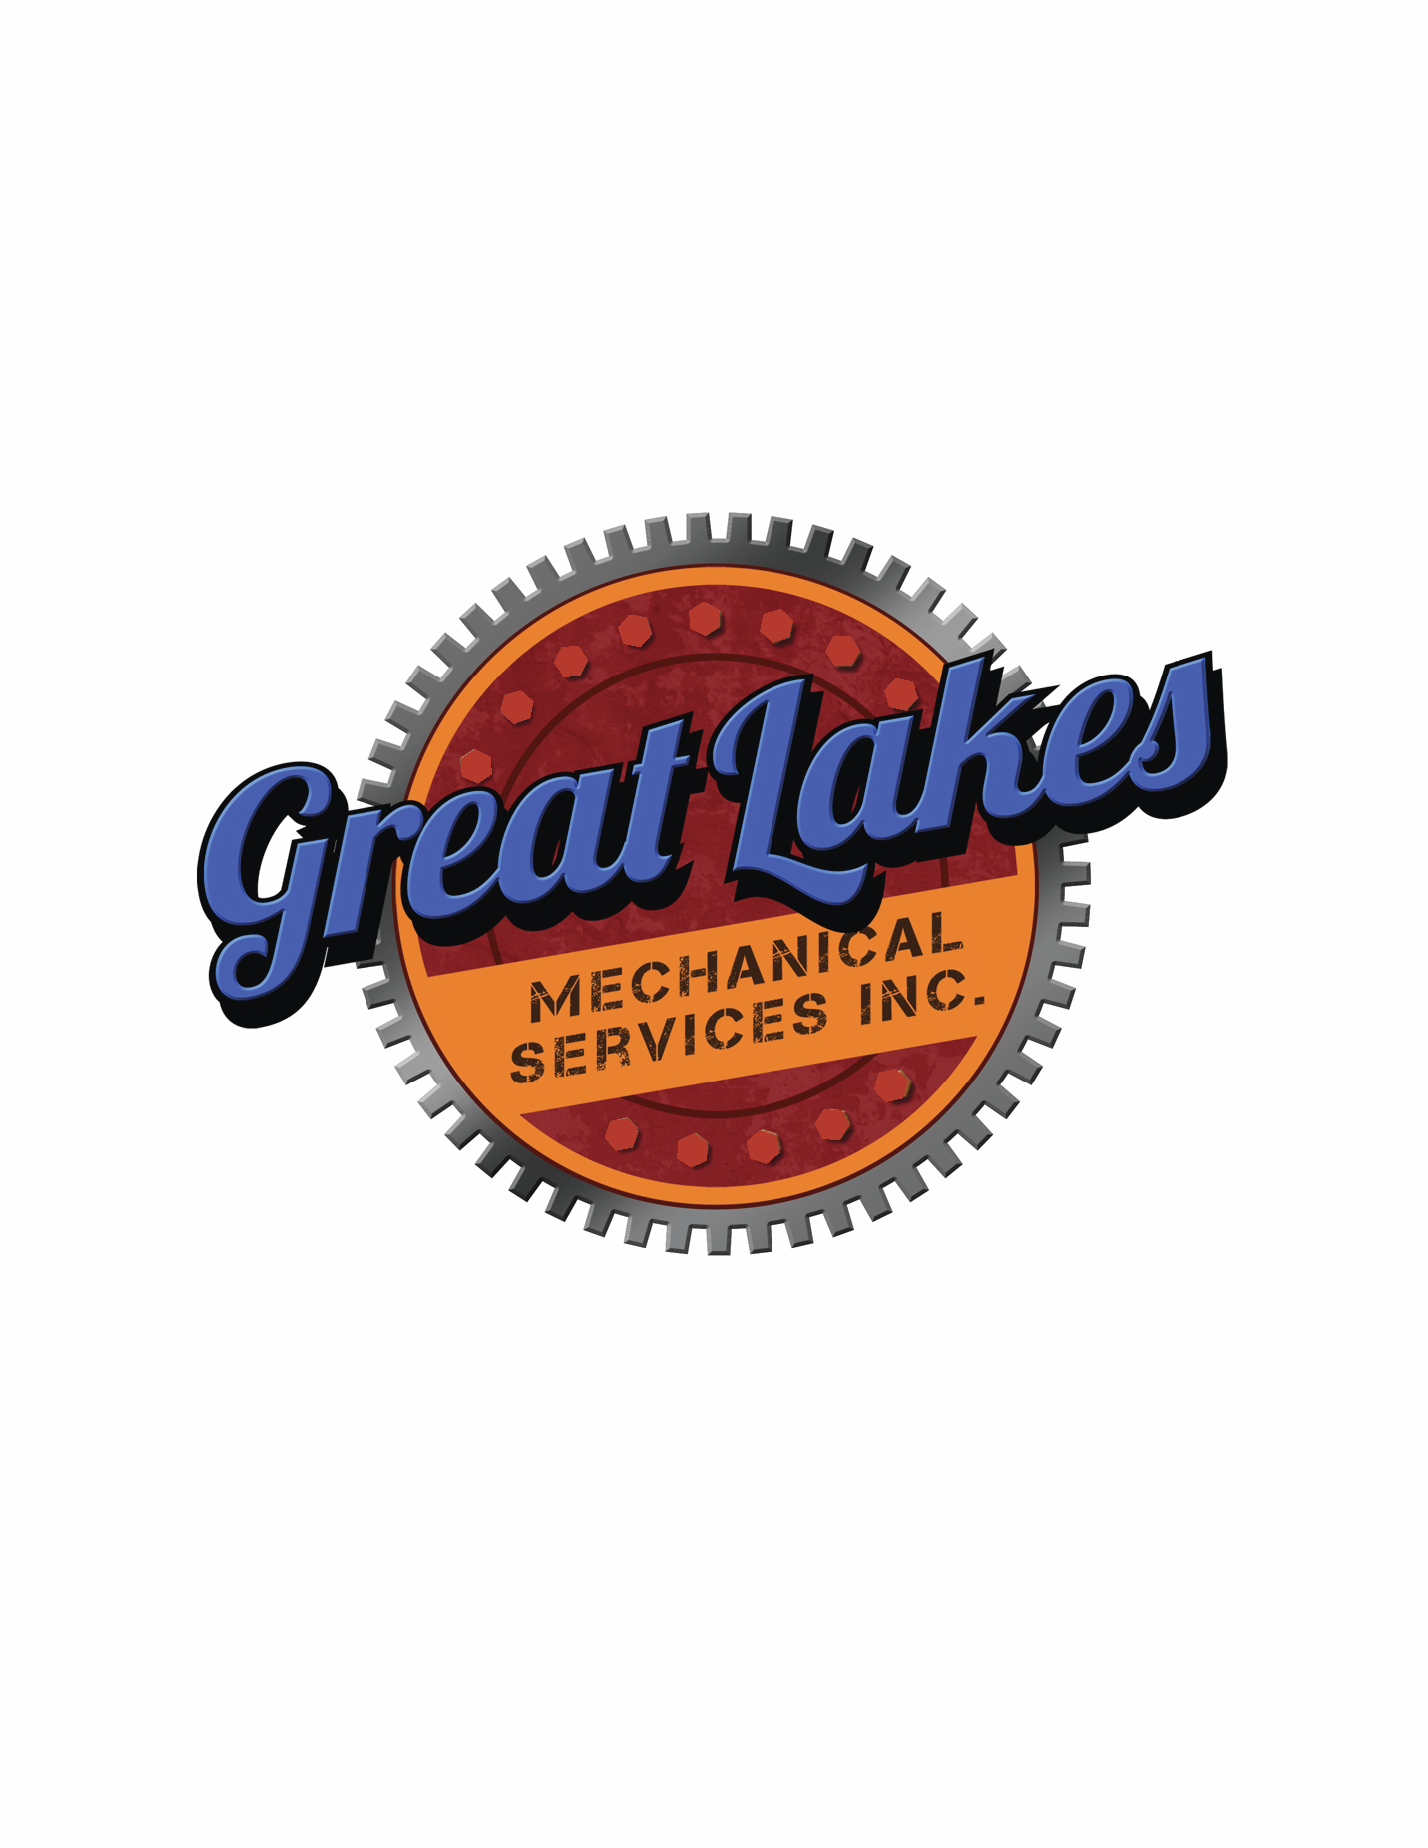 Great Lakes Mechanical.png